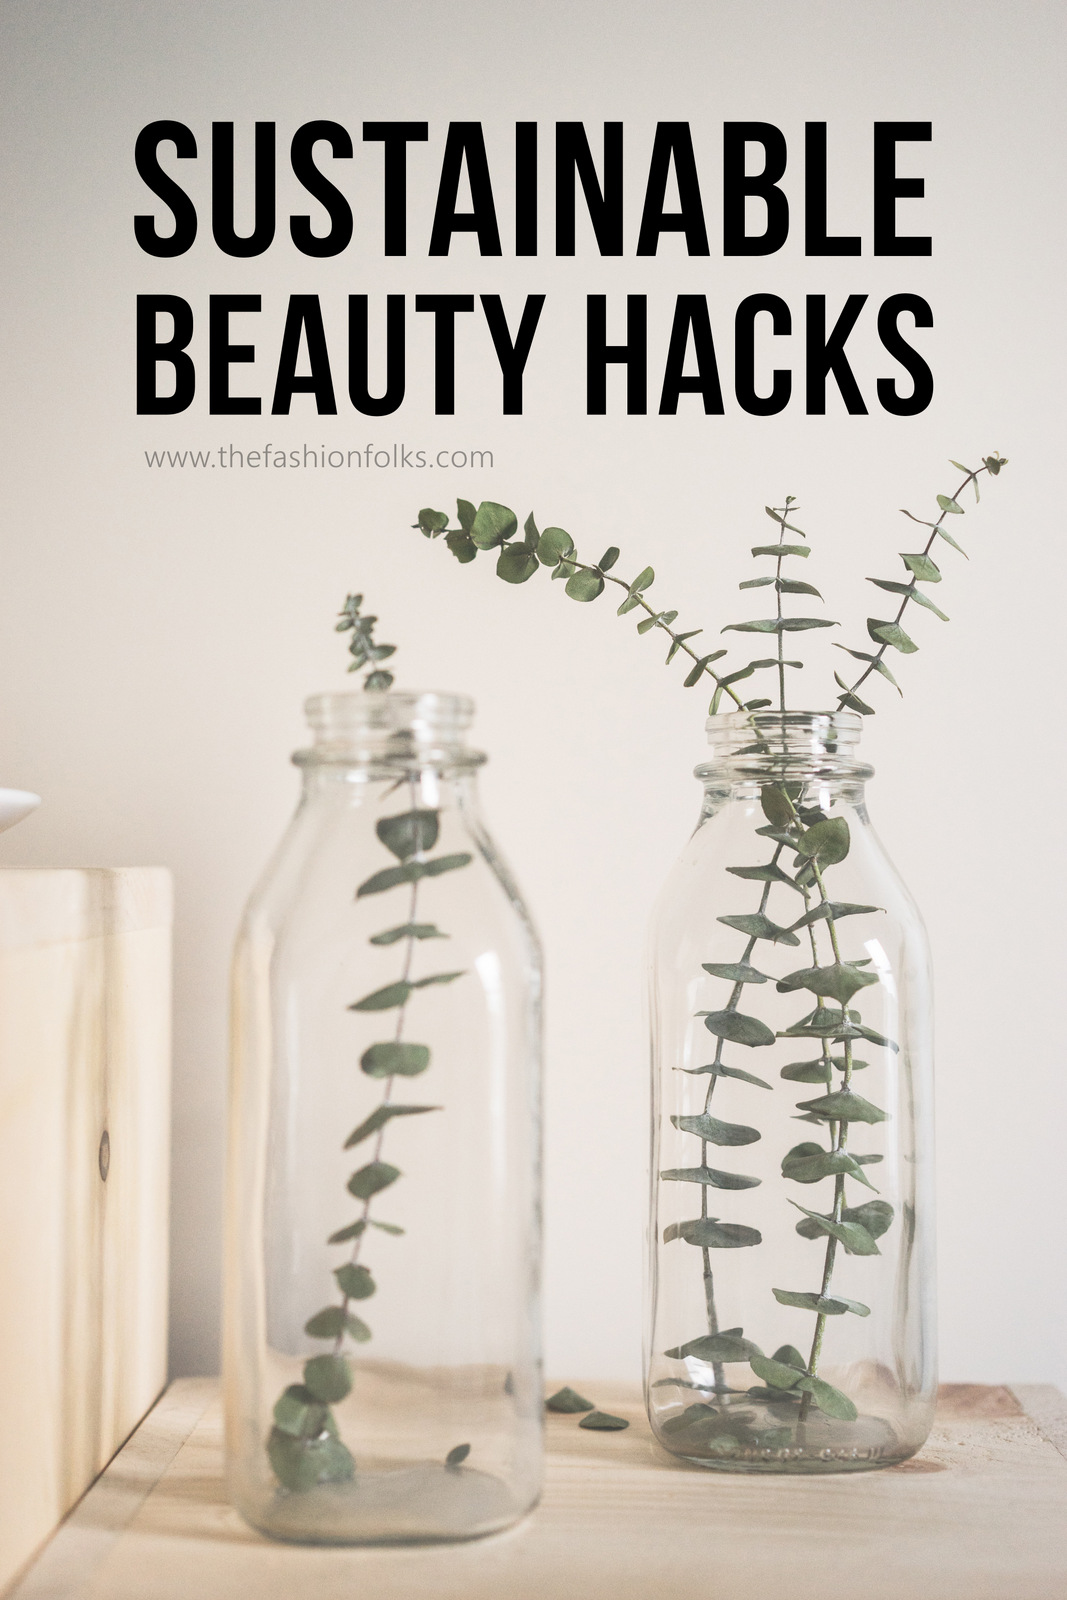 Sustainable Beauty Hacks